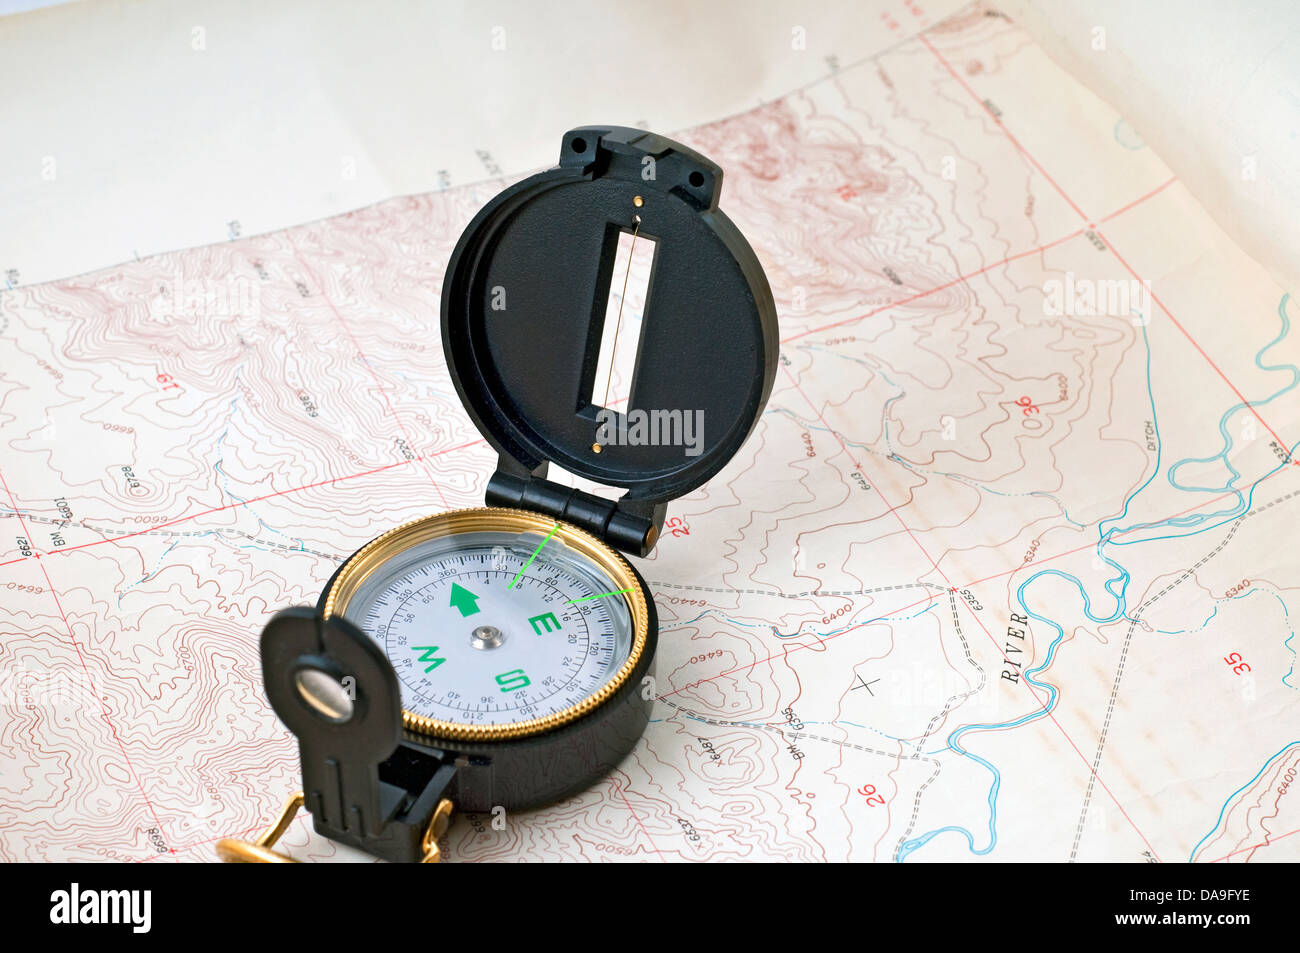 compass laid out over a topographical map - Stock Image